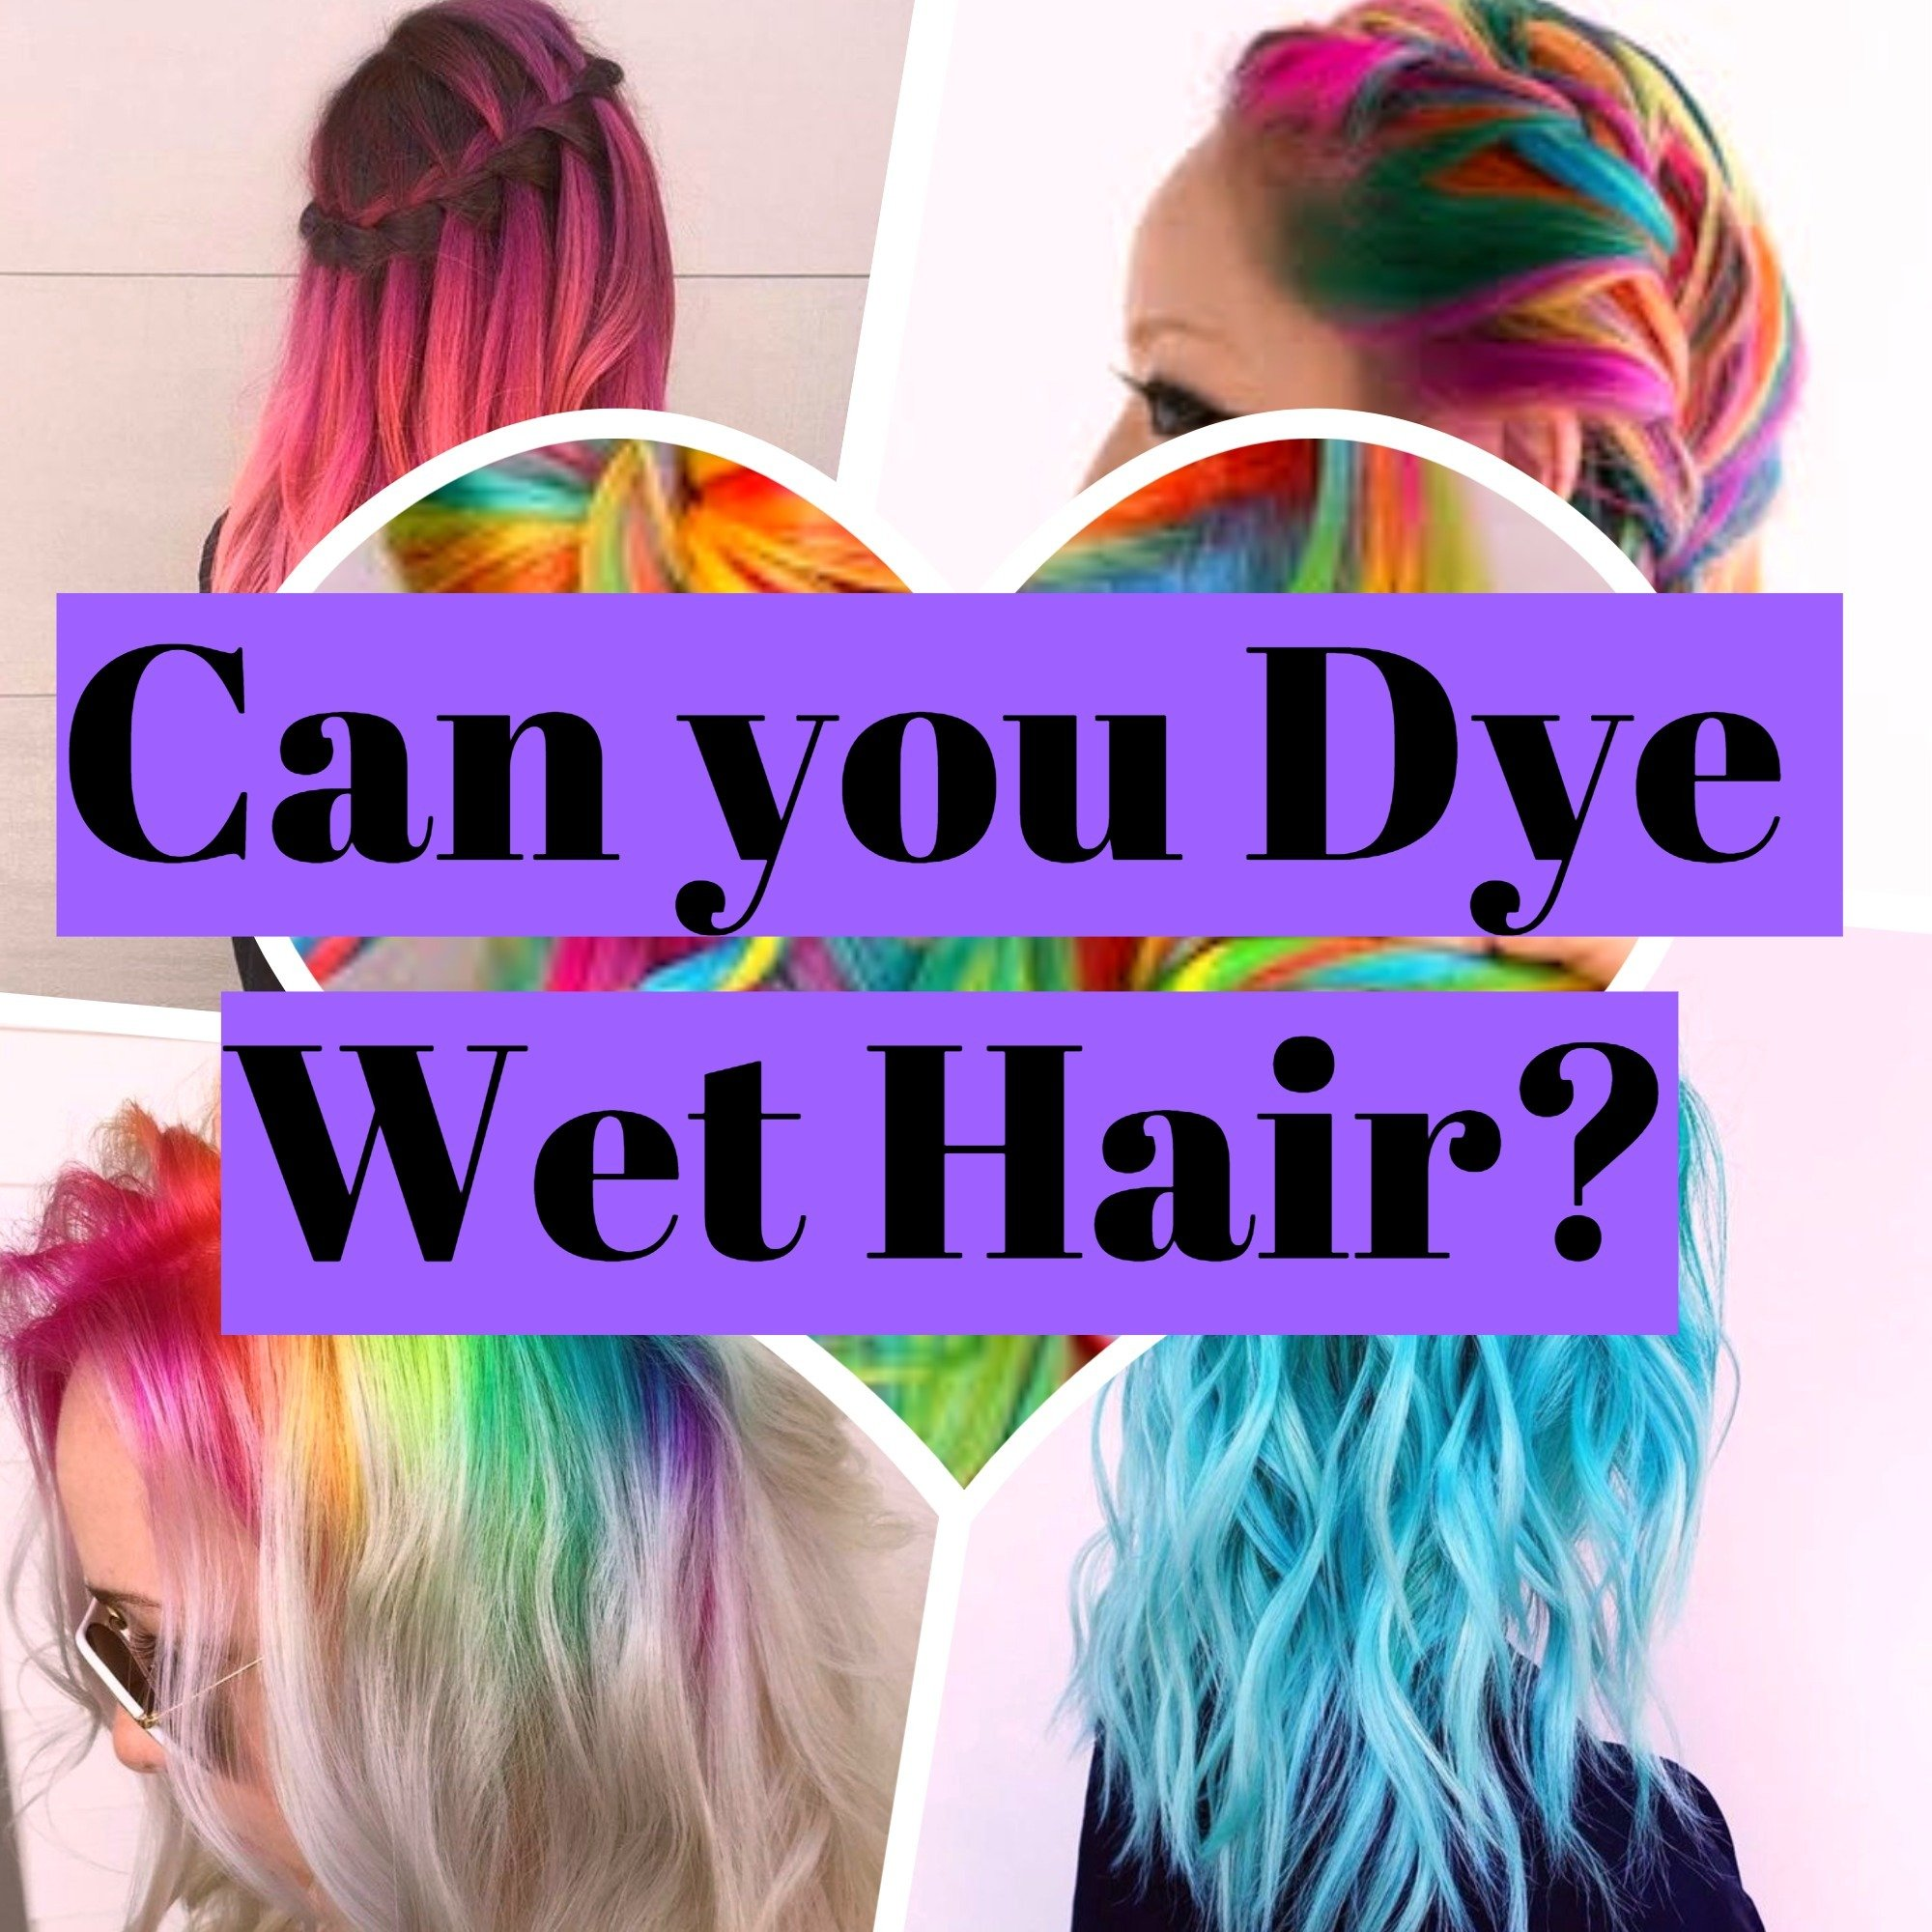 Put hair dye on wet hair: Yes or No 3